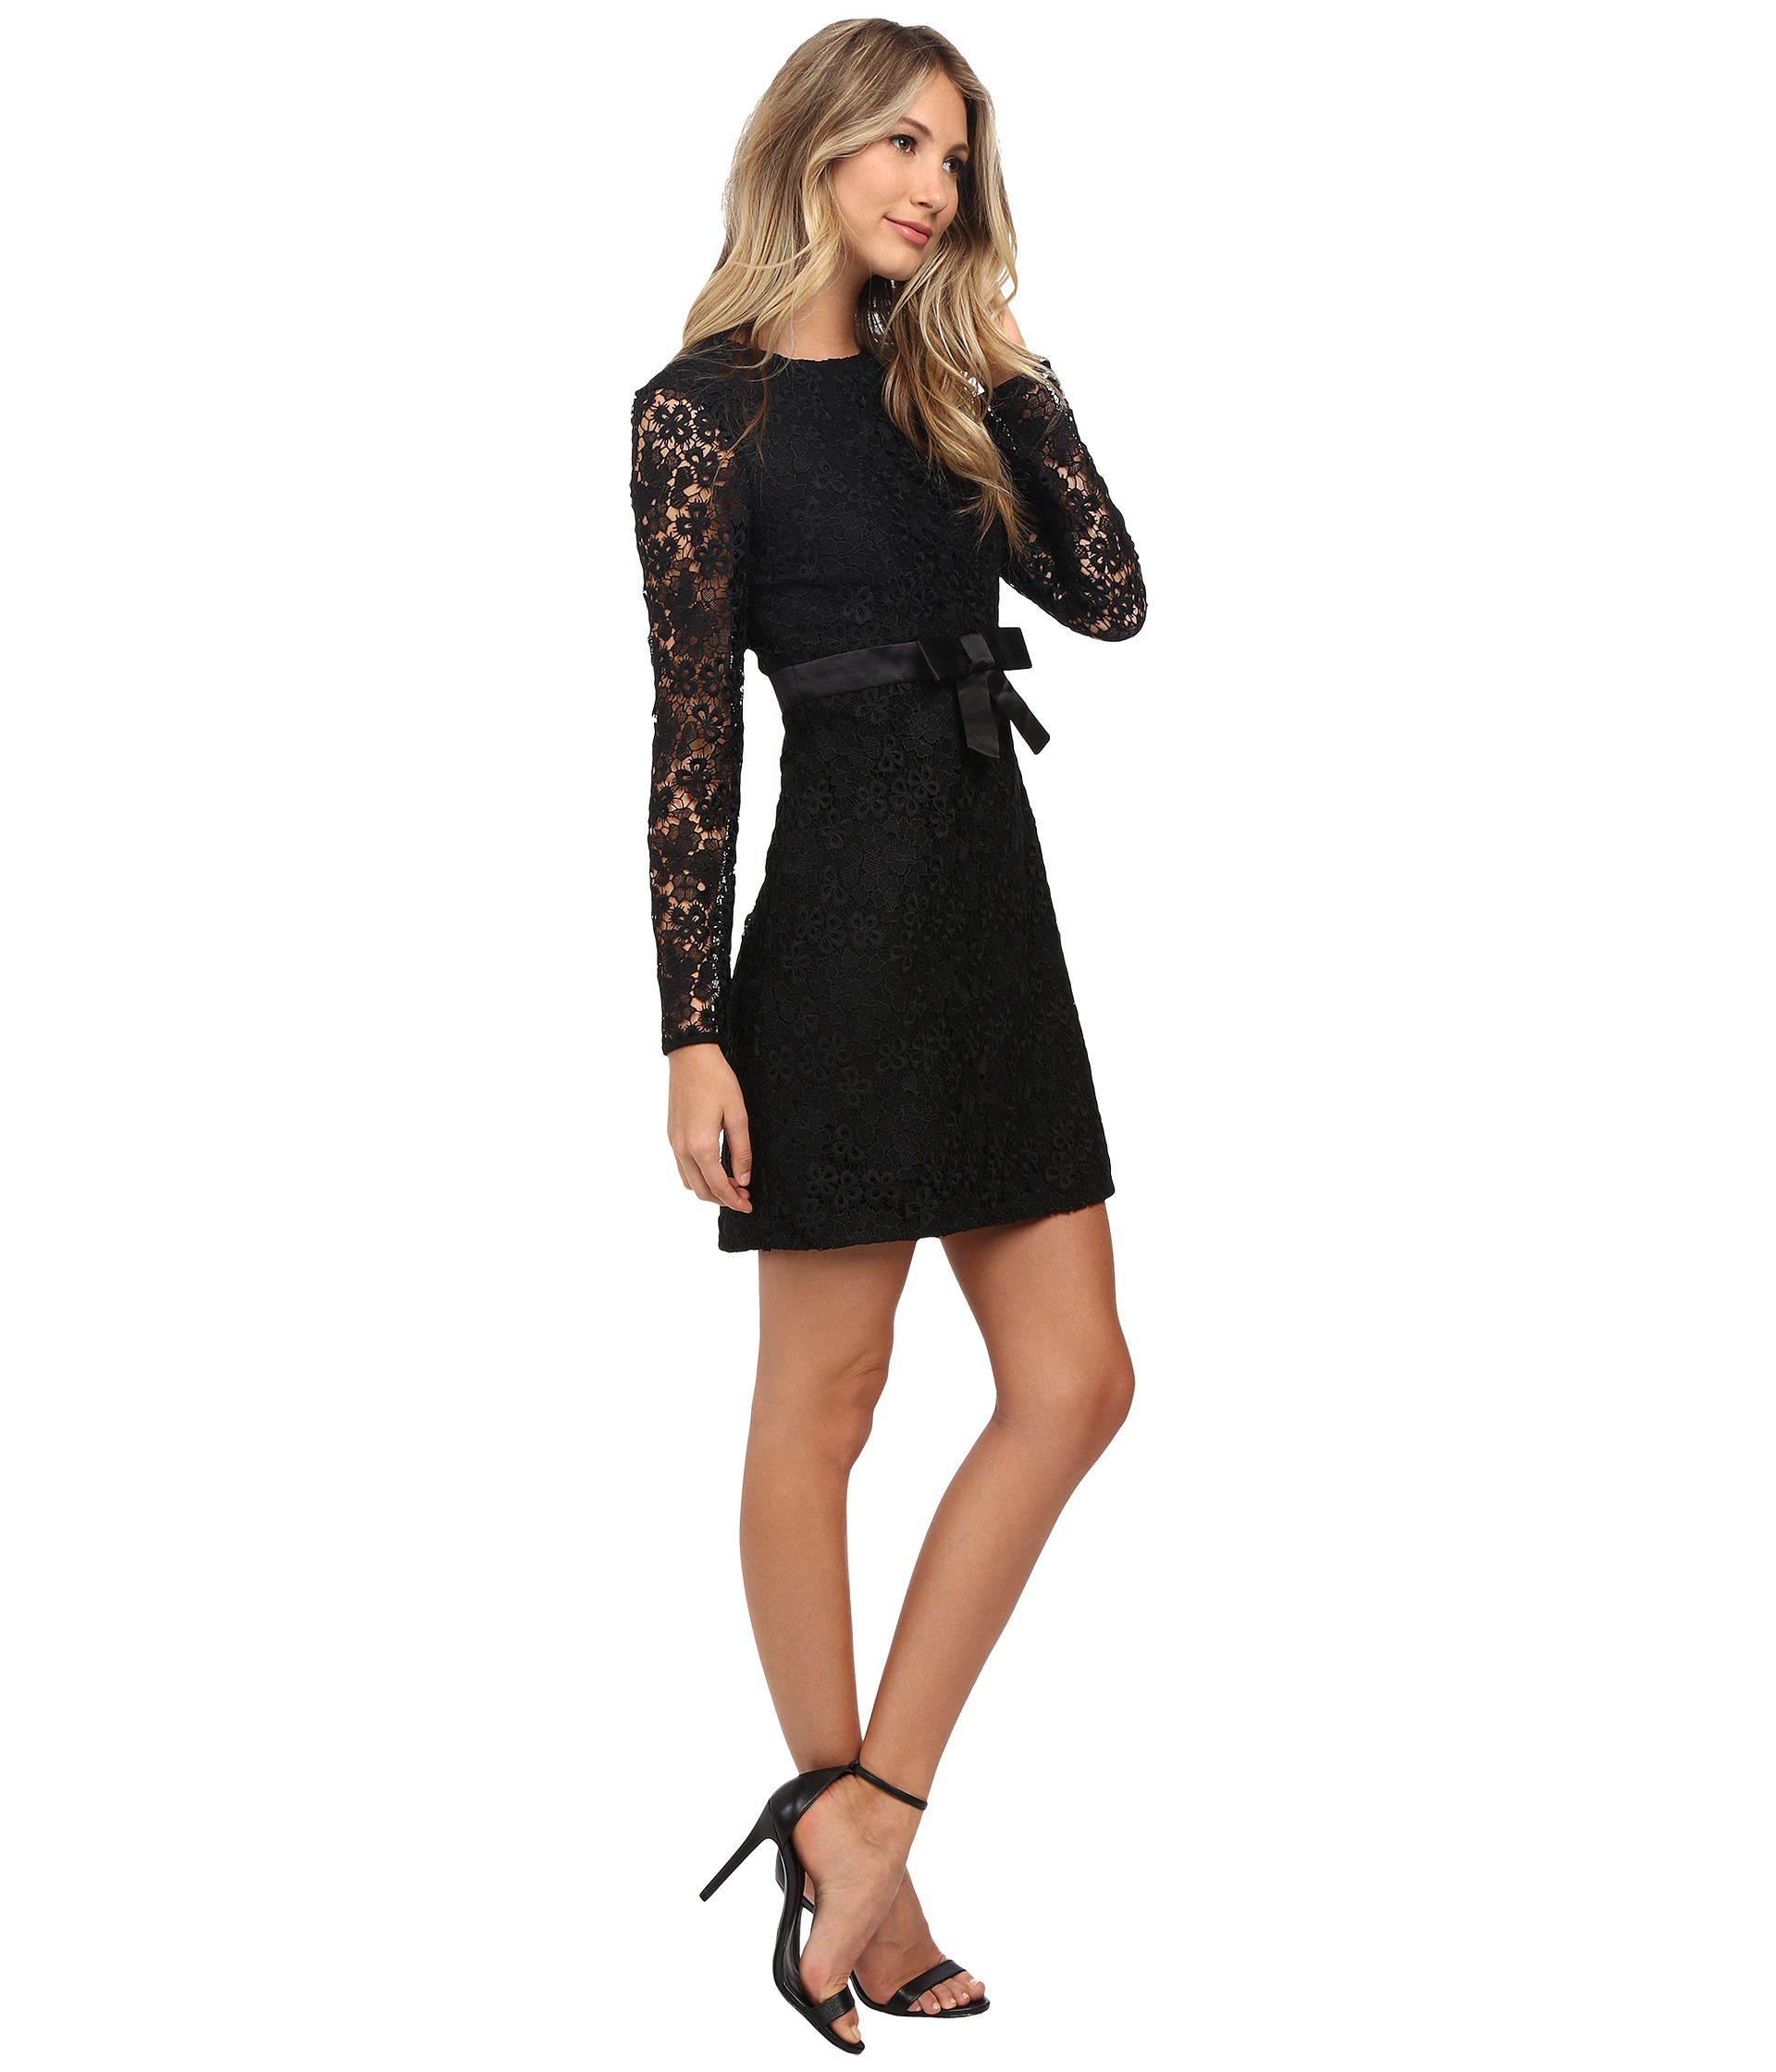 Jill Jill Stuart Long Sleeve Floral Lace Short Dress In